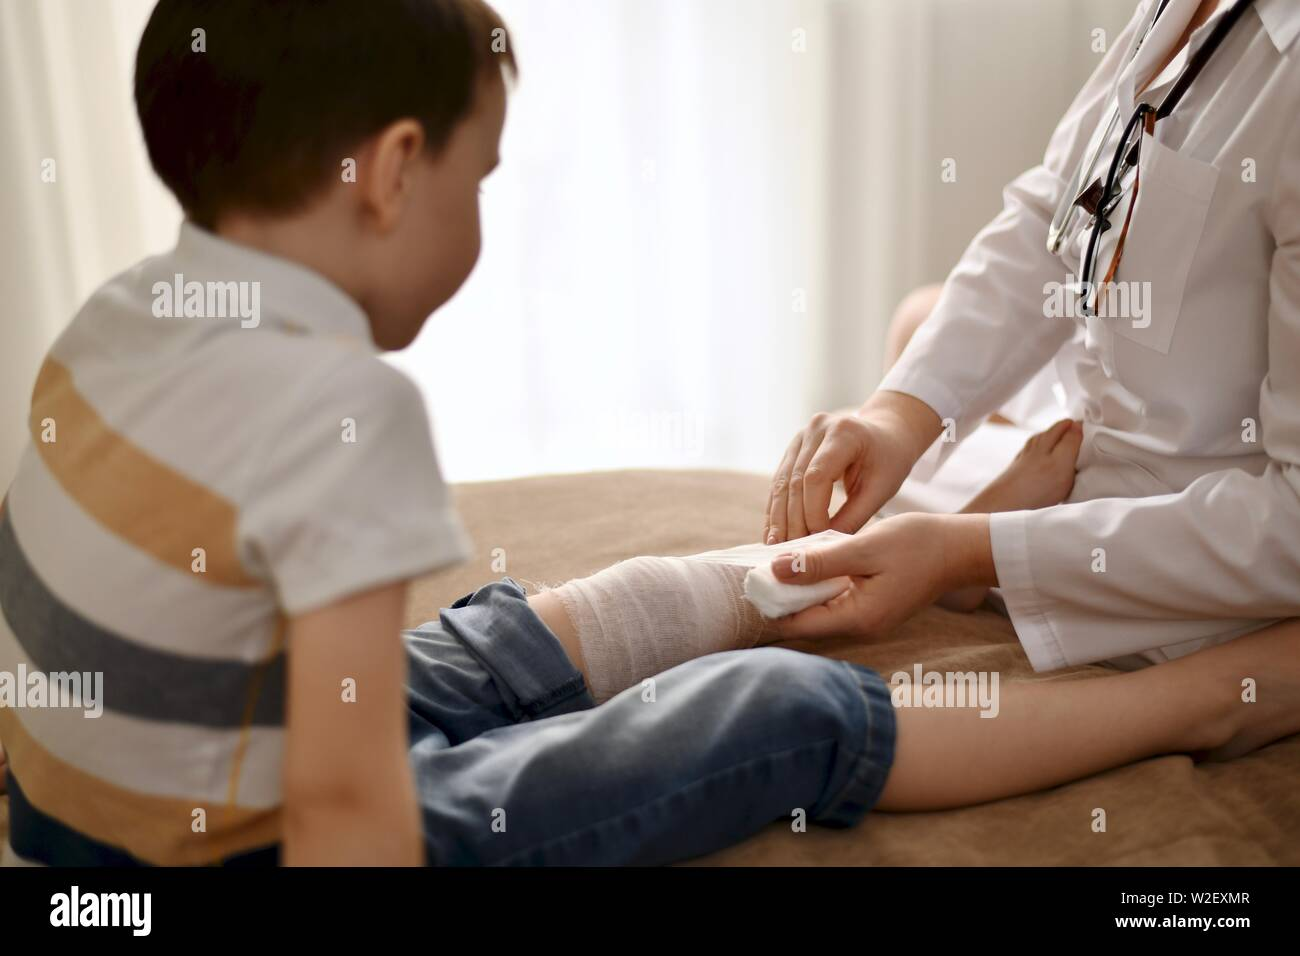 The doctor very carefully and carefully bandages the leg of the child sitting in front of her. The boy quietly watches what is happening. - Stock Image